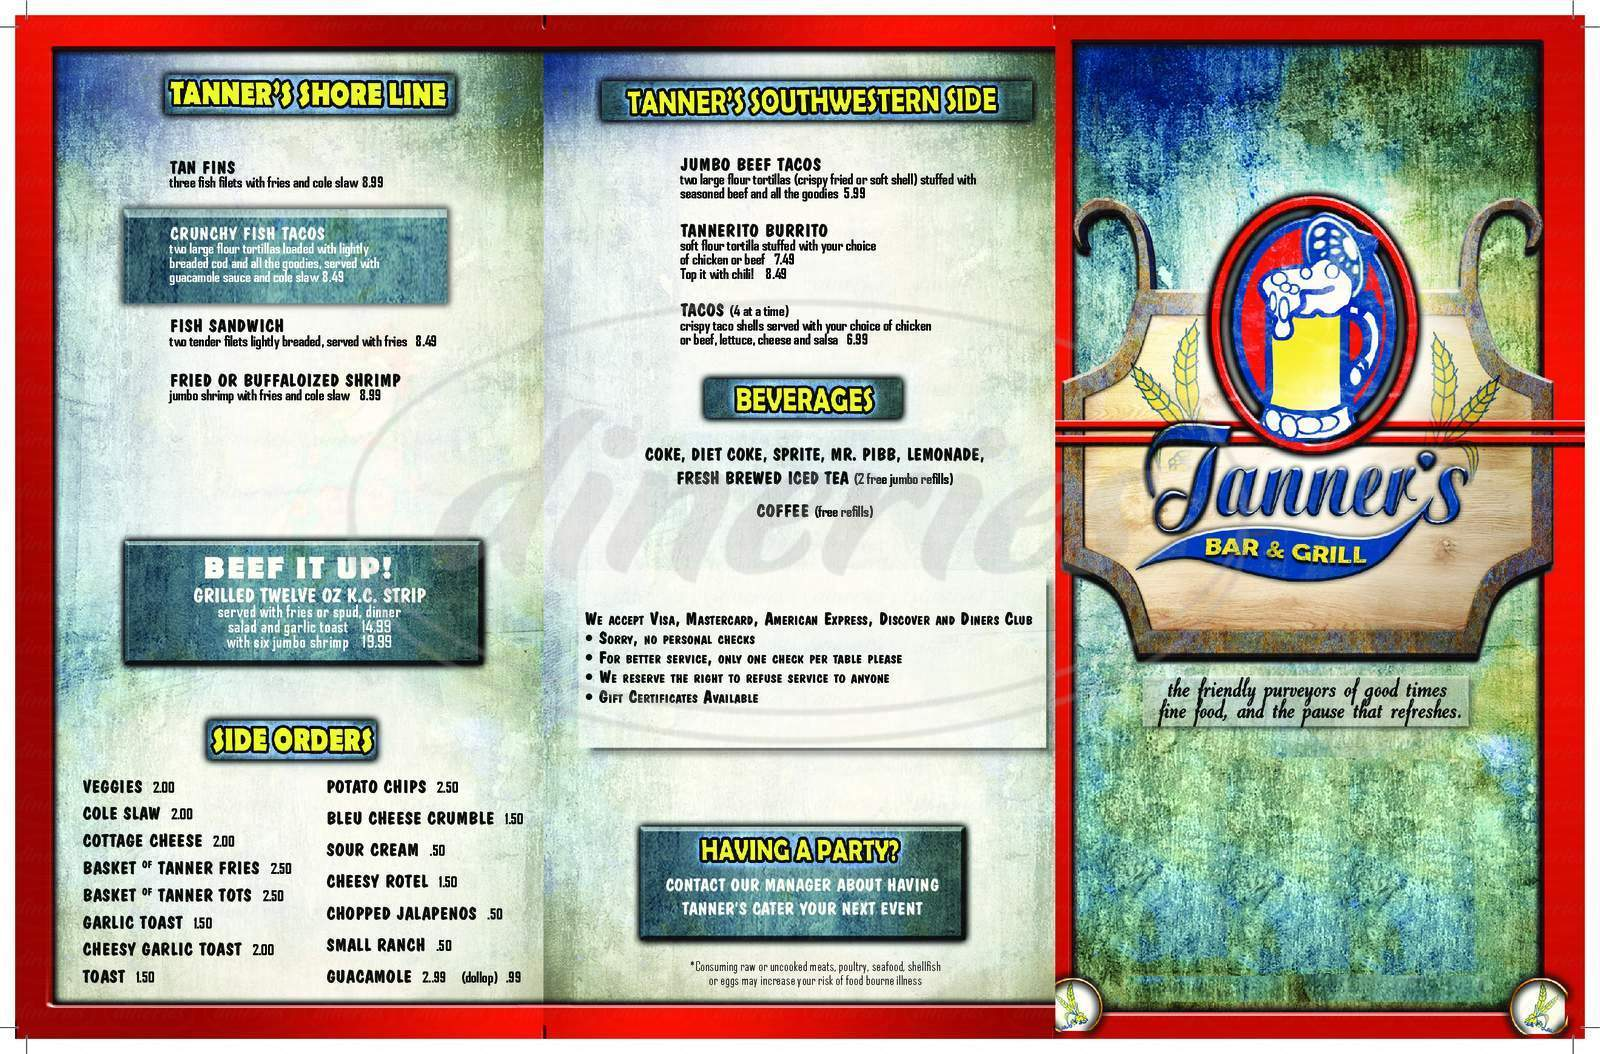 menu for Tanner's Bar & Grill